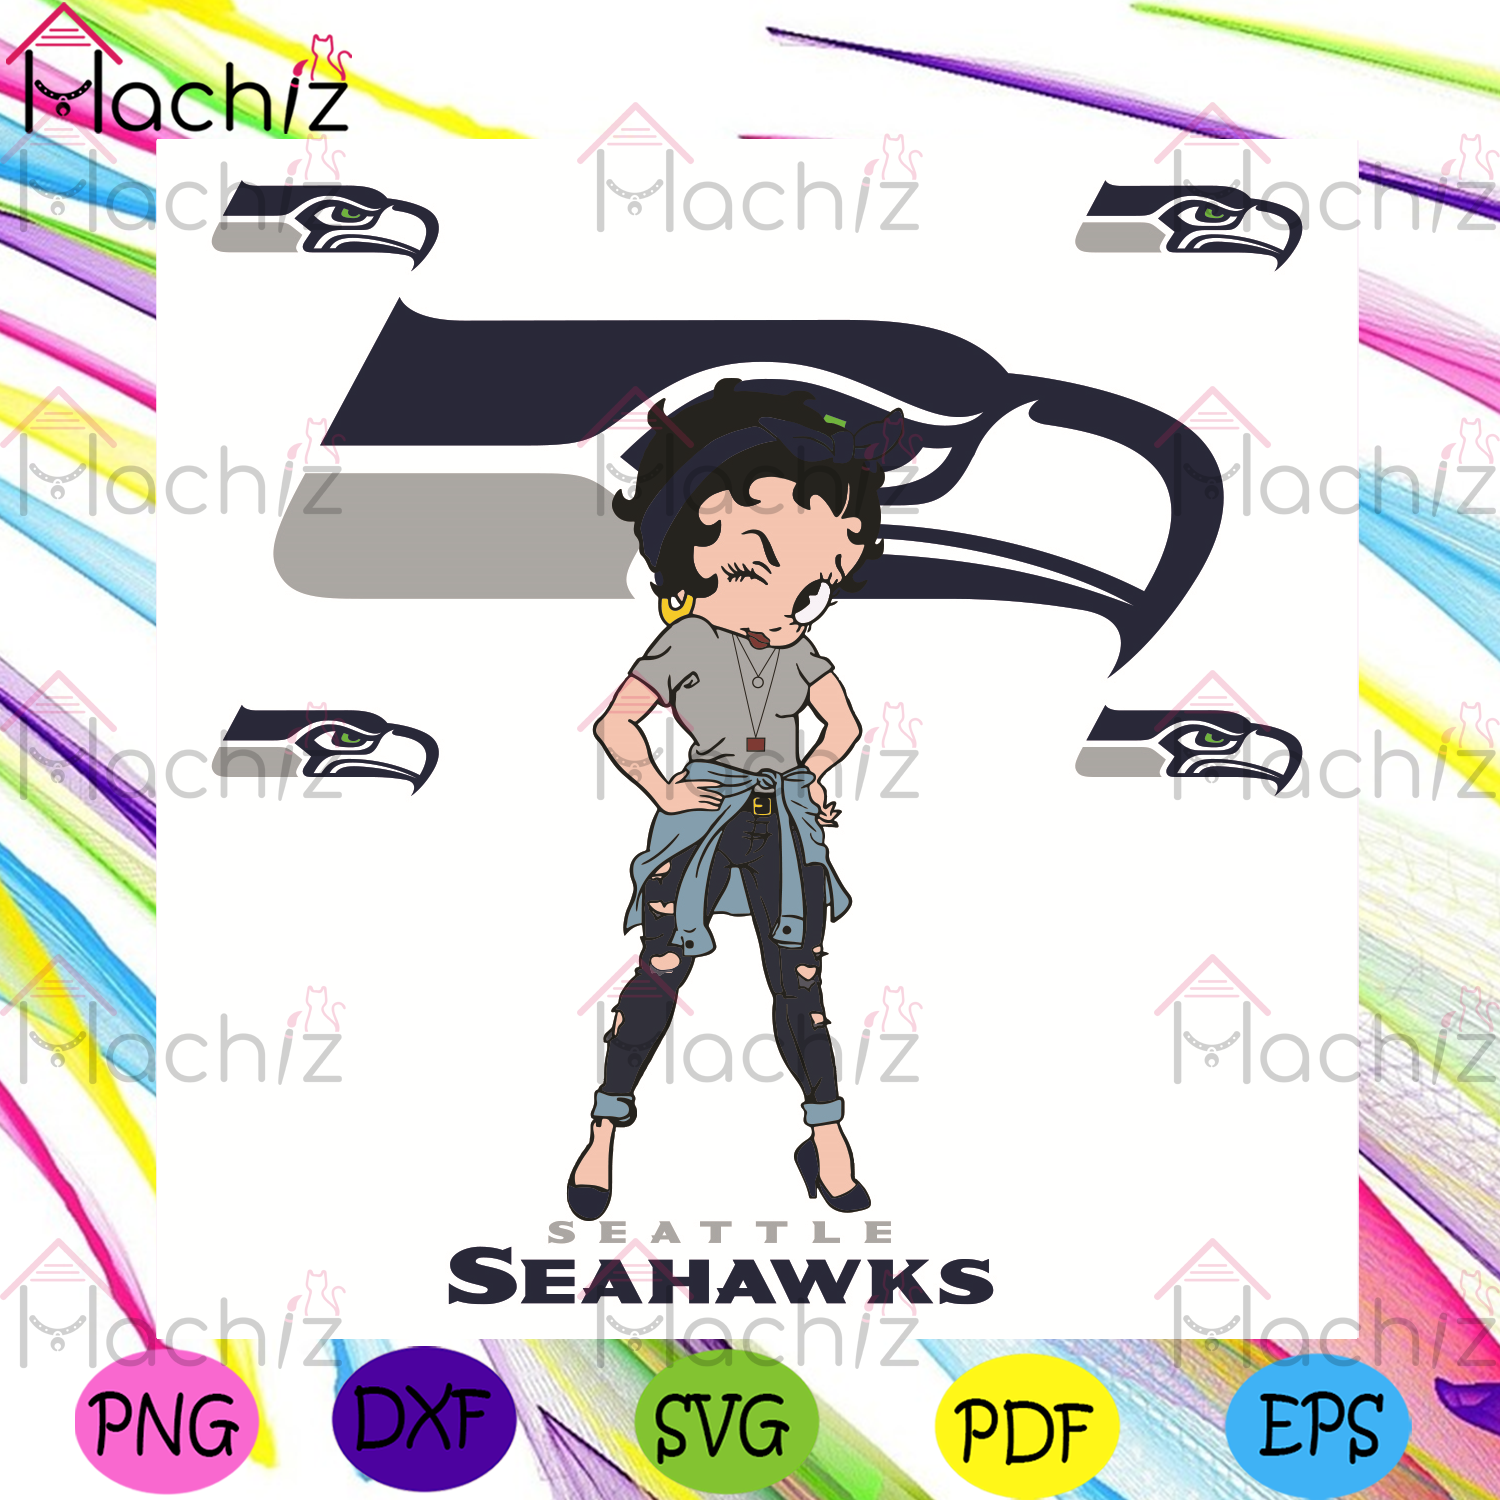 Betty Boop Seattle Seahawks Svg, Sport Svg, Seattle Seahawks Football Team Svg, Seattle Seahawks Svg, Seattle Seahawks Fans Svg, Betty Boop Svg, Seattle Seahawks Lovers Svg, Seattle Seahawks Gifts Svg, NFL Svg